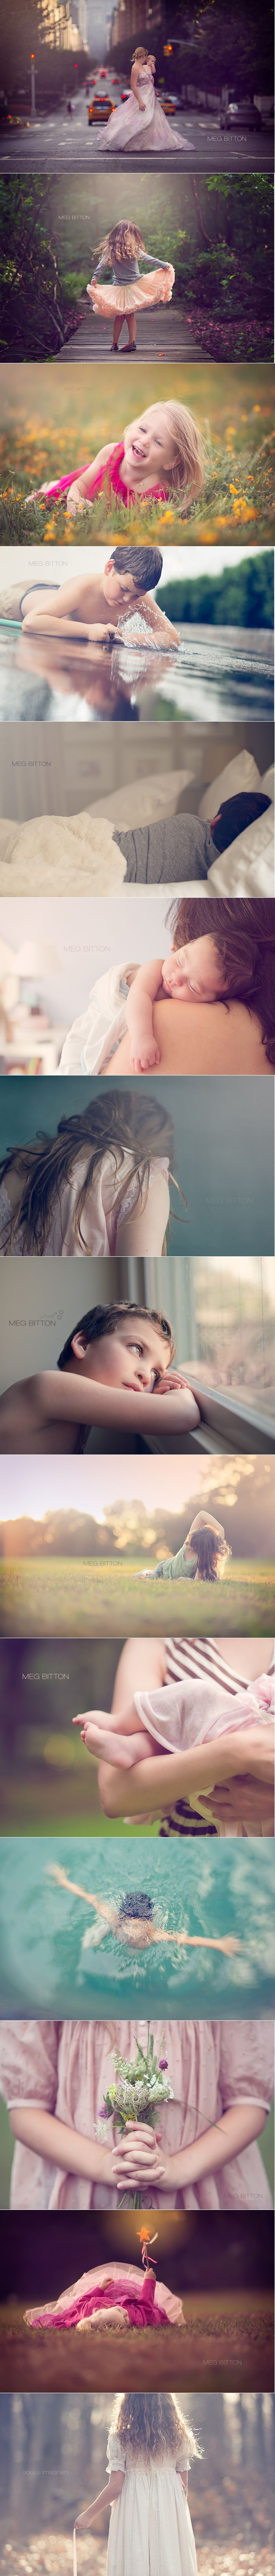 Family Photography Poses, and Settings. I love these beautifully soft iinspirational photos.